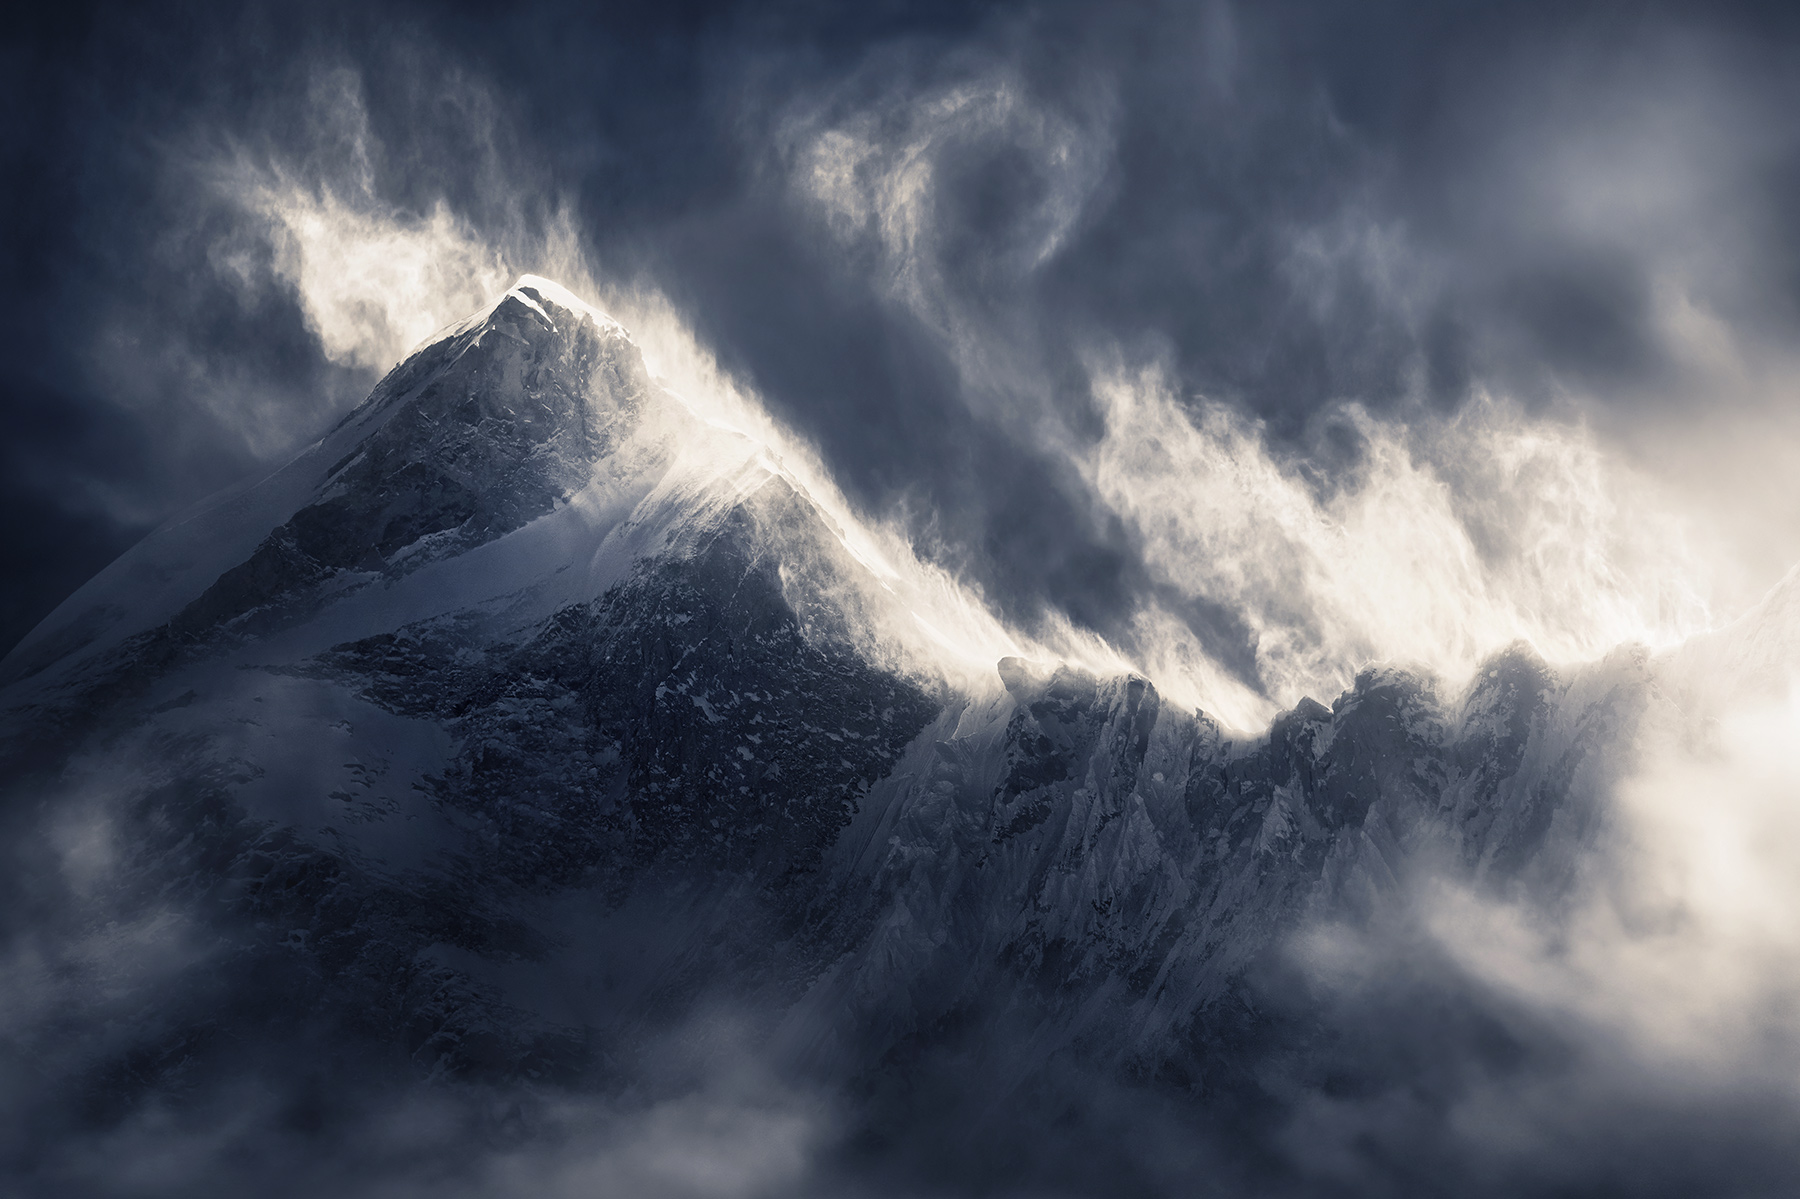 Makalu, snow, blowing, wind, storm, power, dramatic, winter, cold, himalaya, tibet, photo